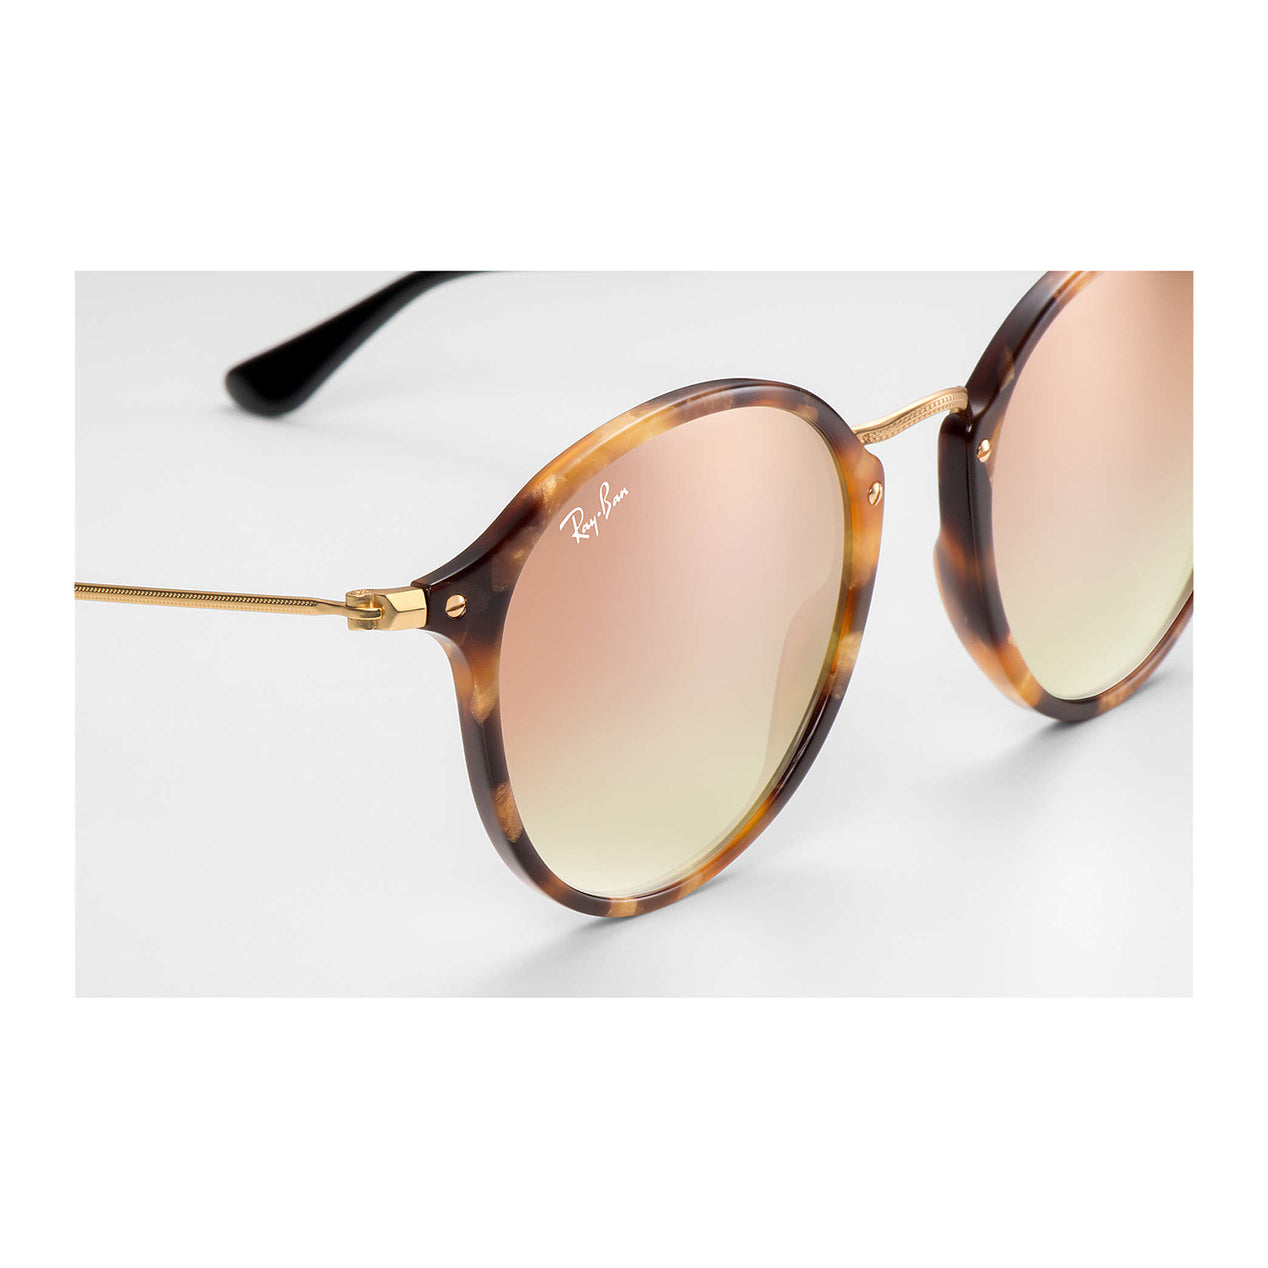 cb79e3f0cb ... Round Fleck Sunglasses - Tortoise Black Frame - Copper Gradient Flash  Lens thumb ...